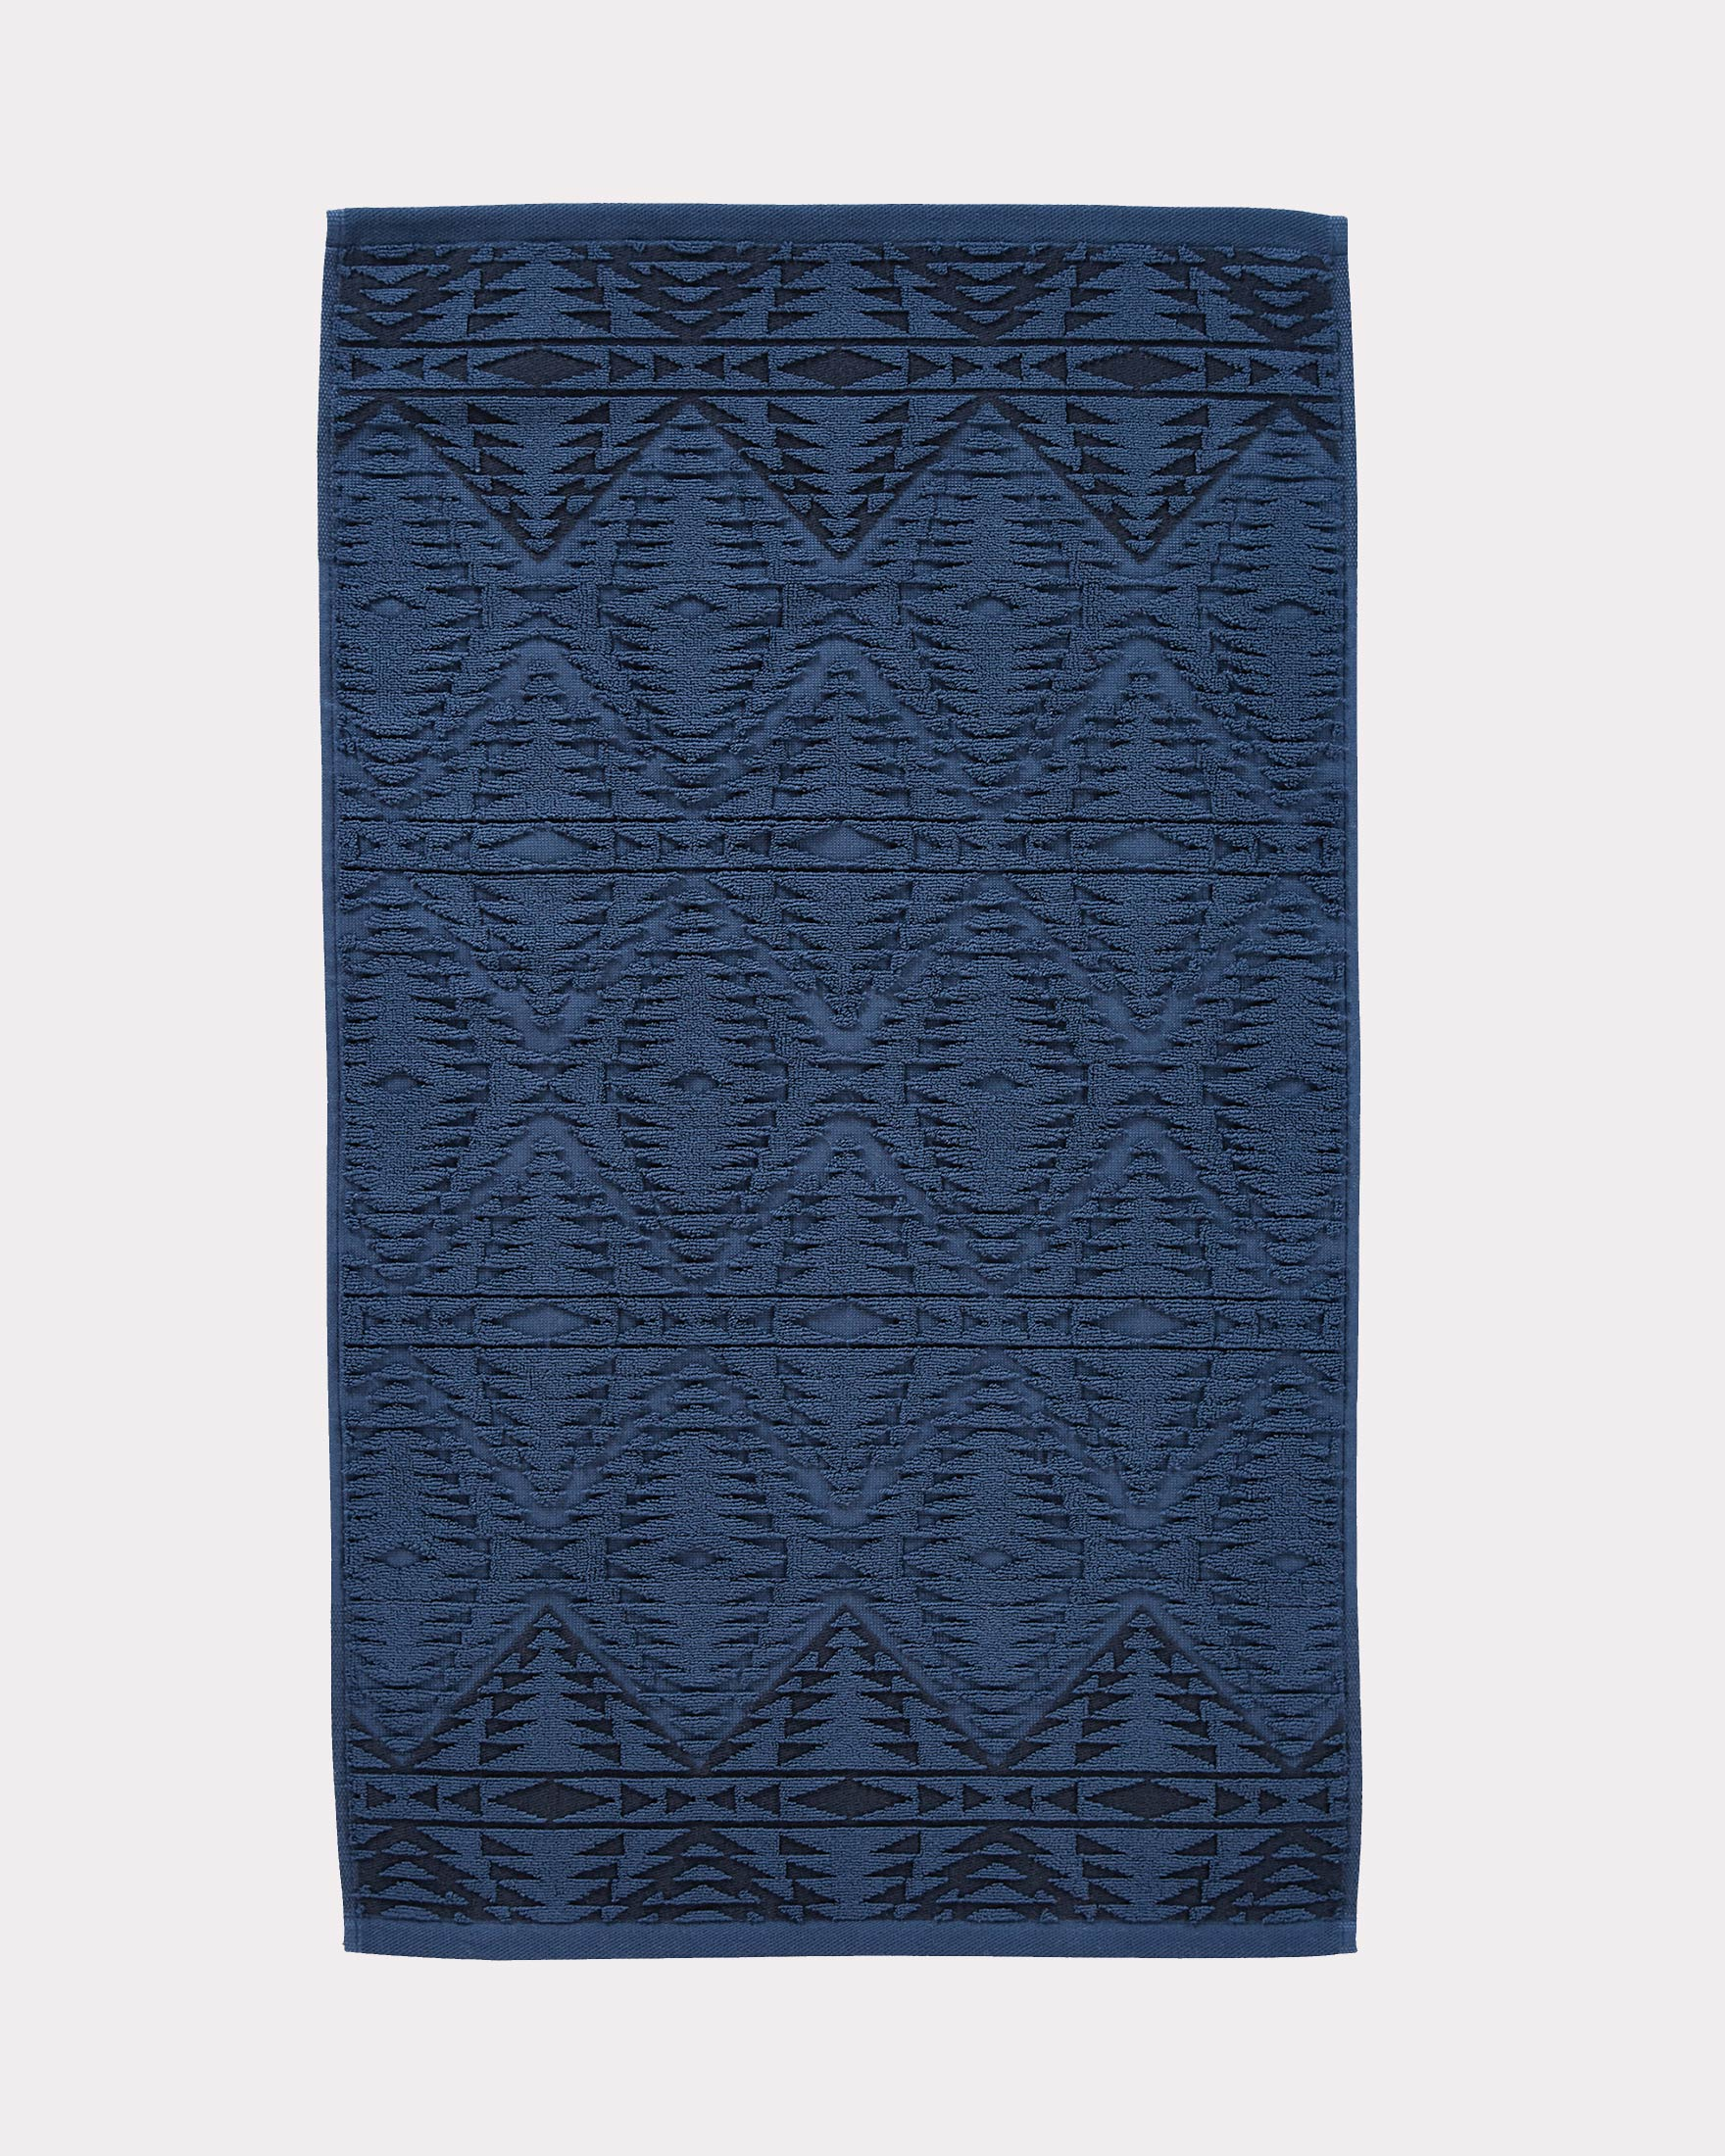 PECOS SCULPTED HAND TOWEL, NAVY, large